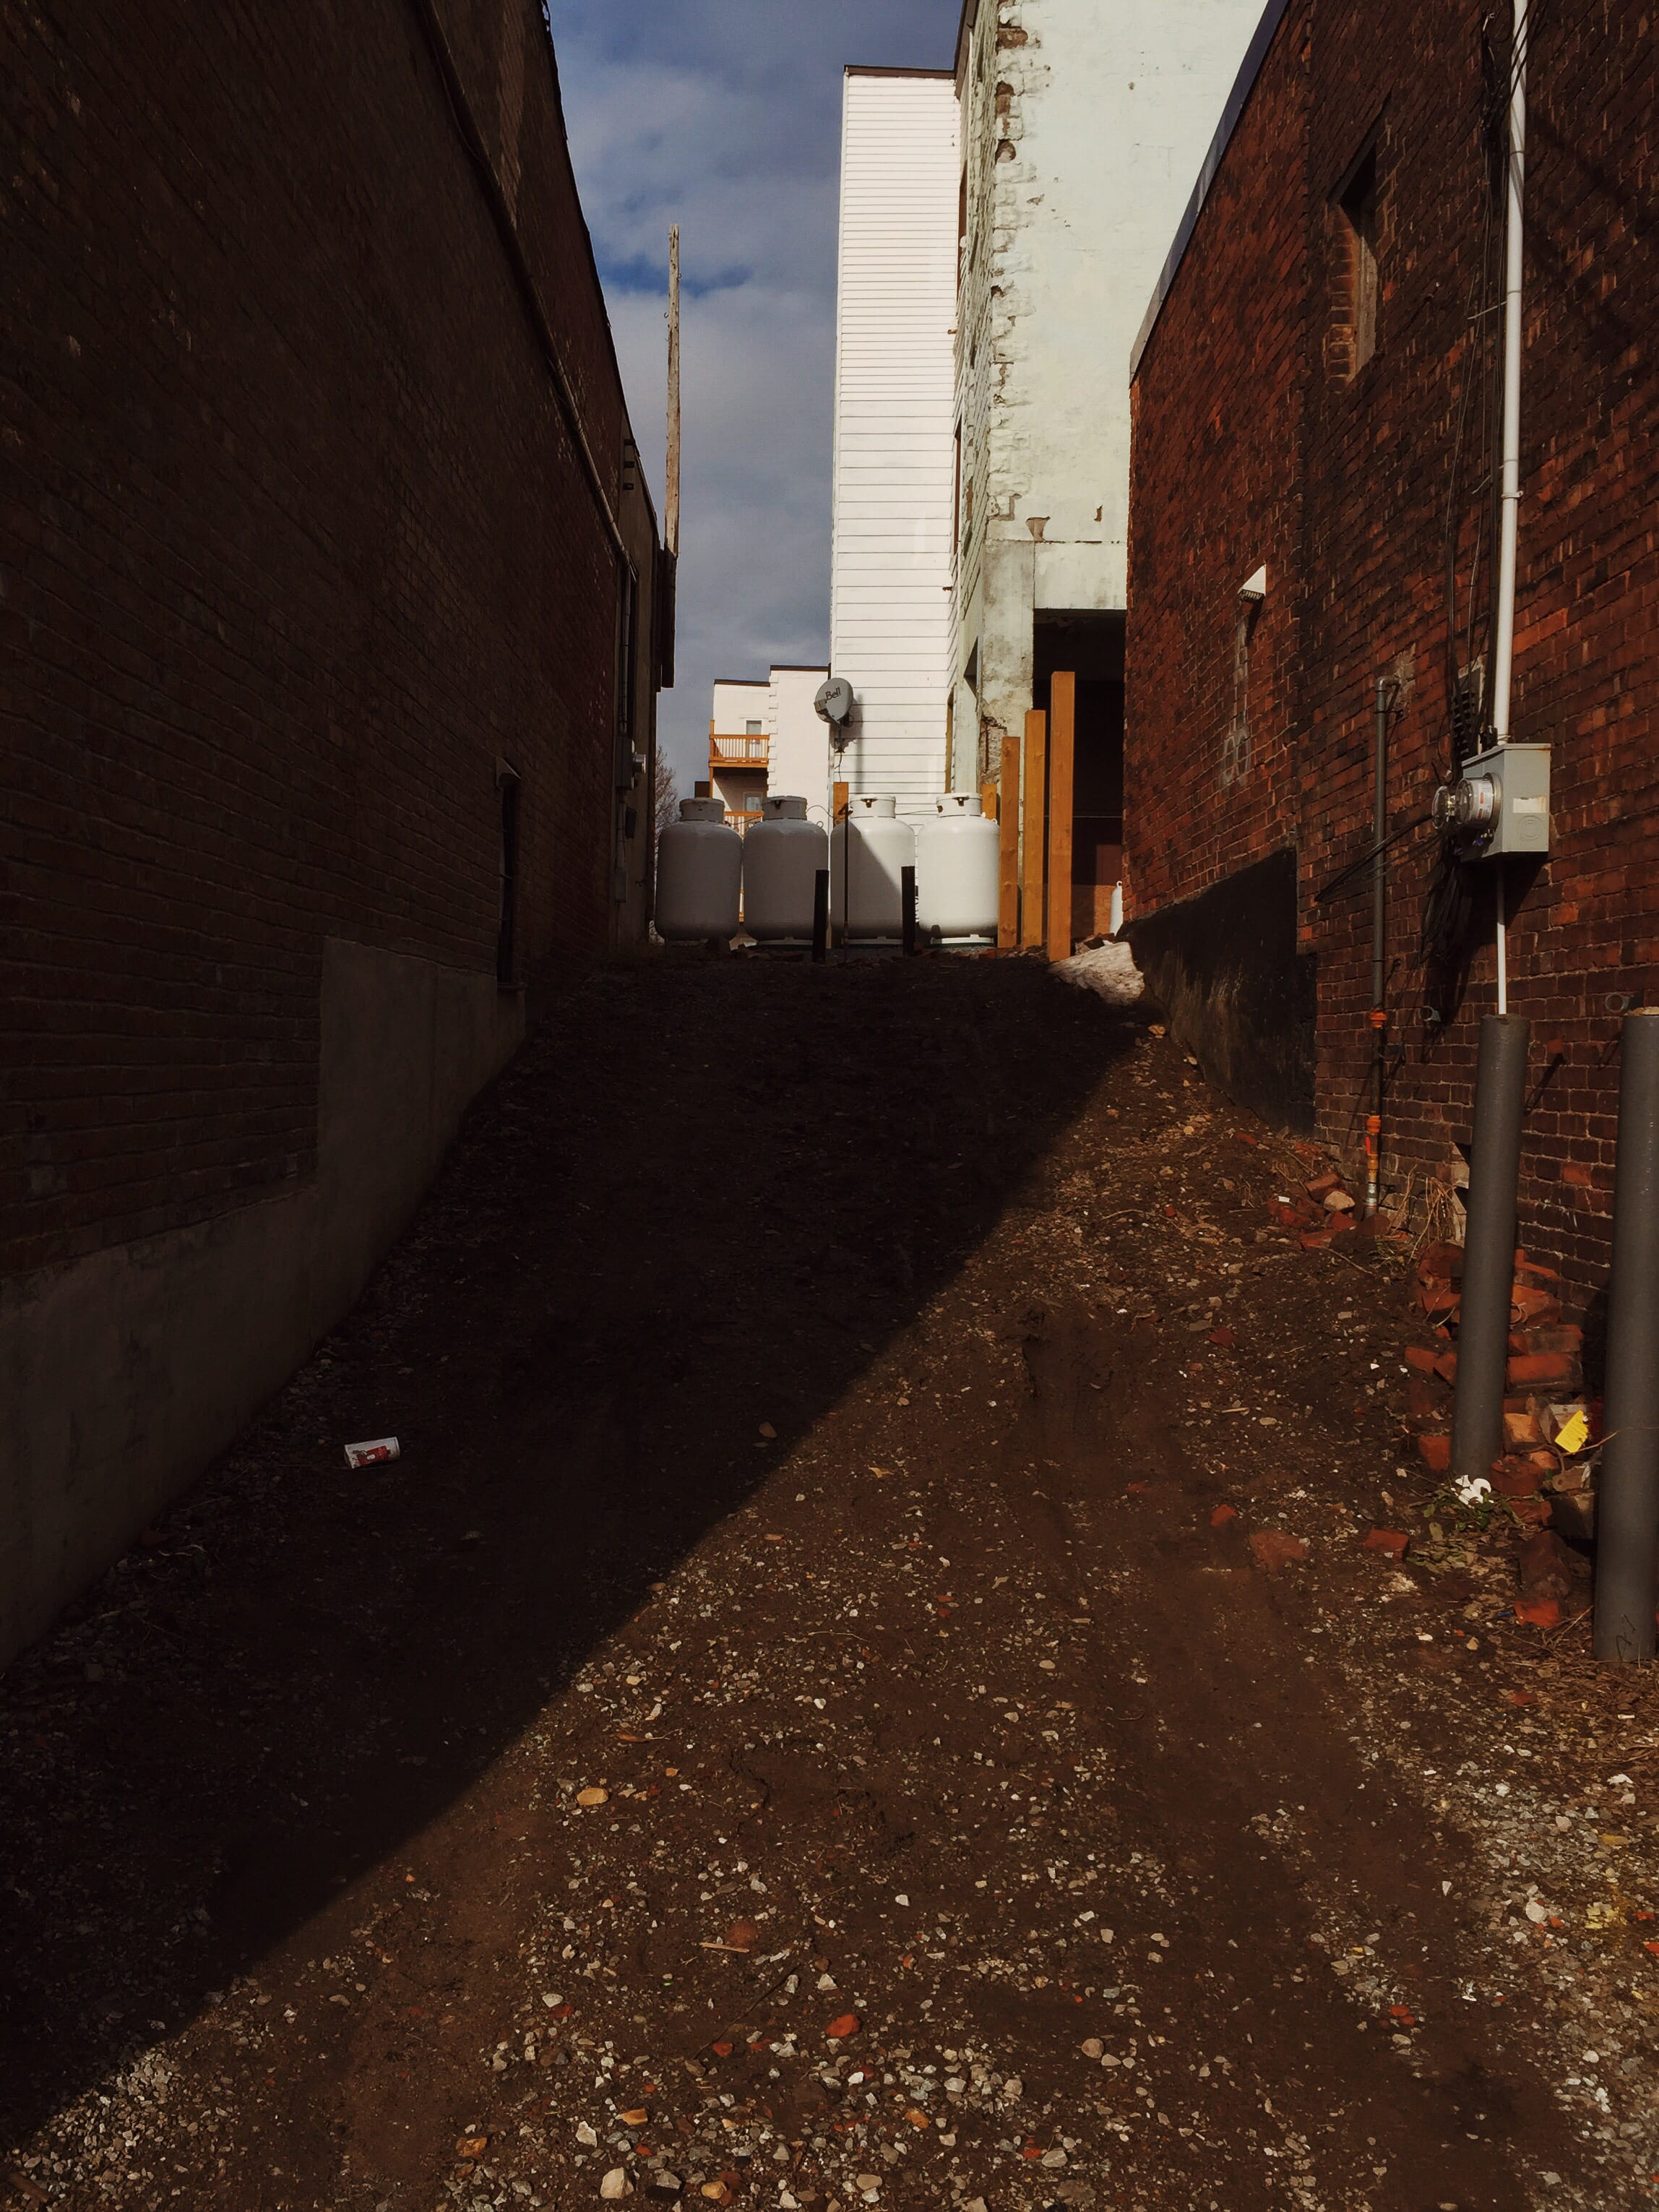 A photograph depicting Propane Tanks in Alleyway